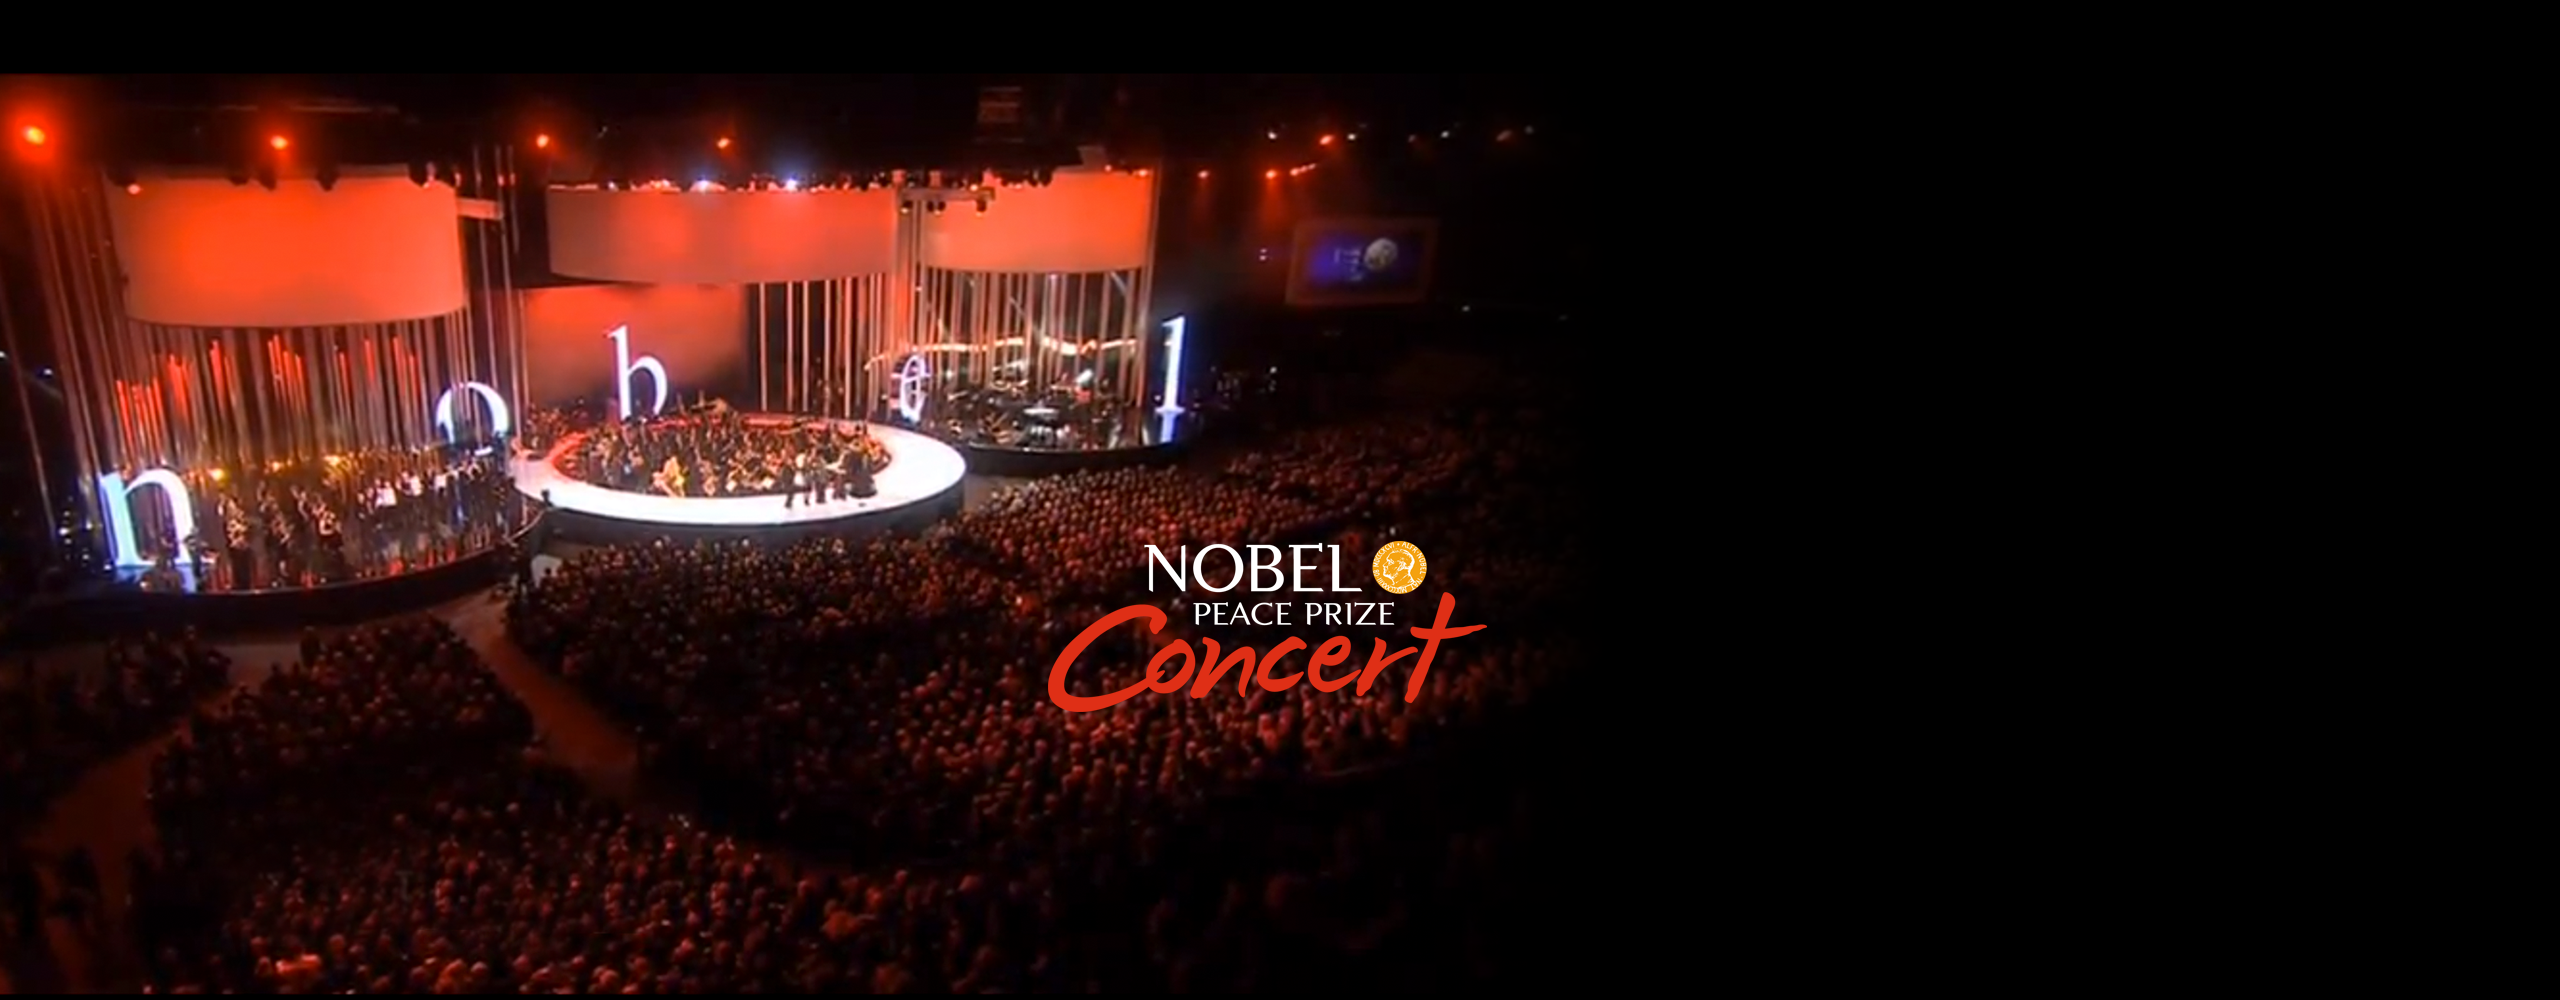 Creating a new image for the Nobel Peace Prize Concert